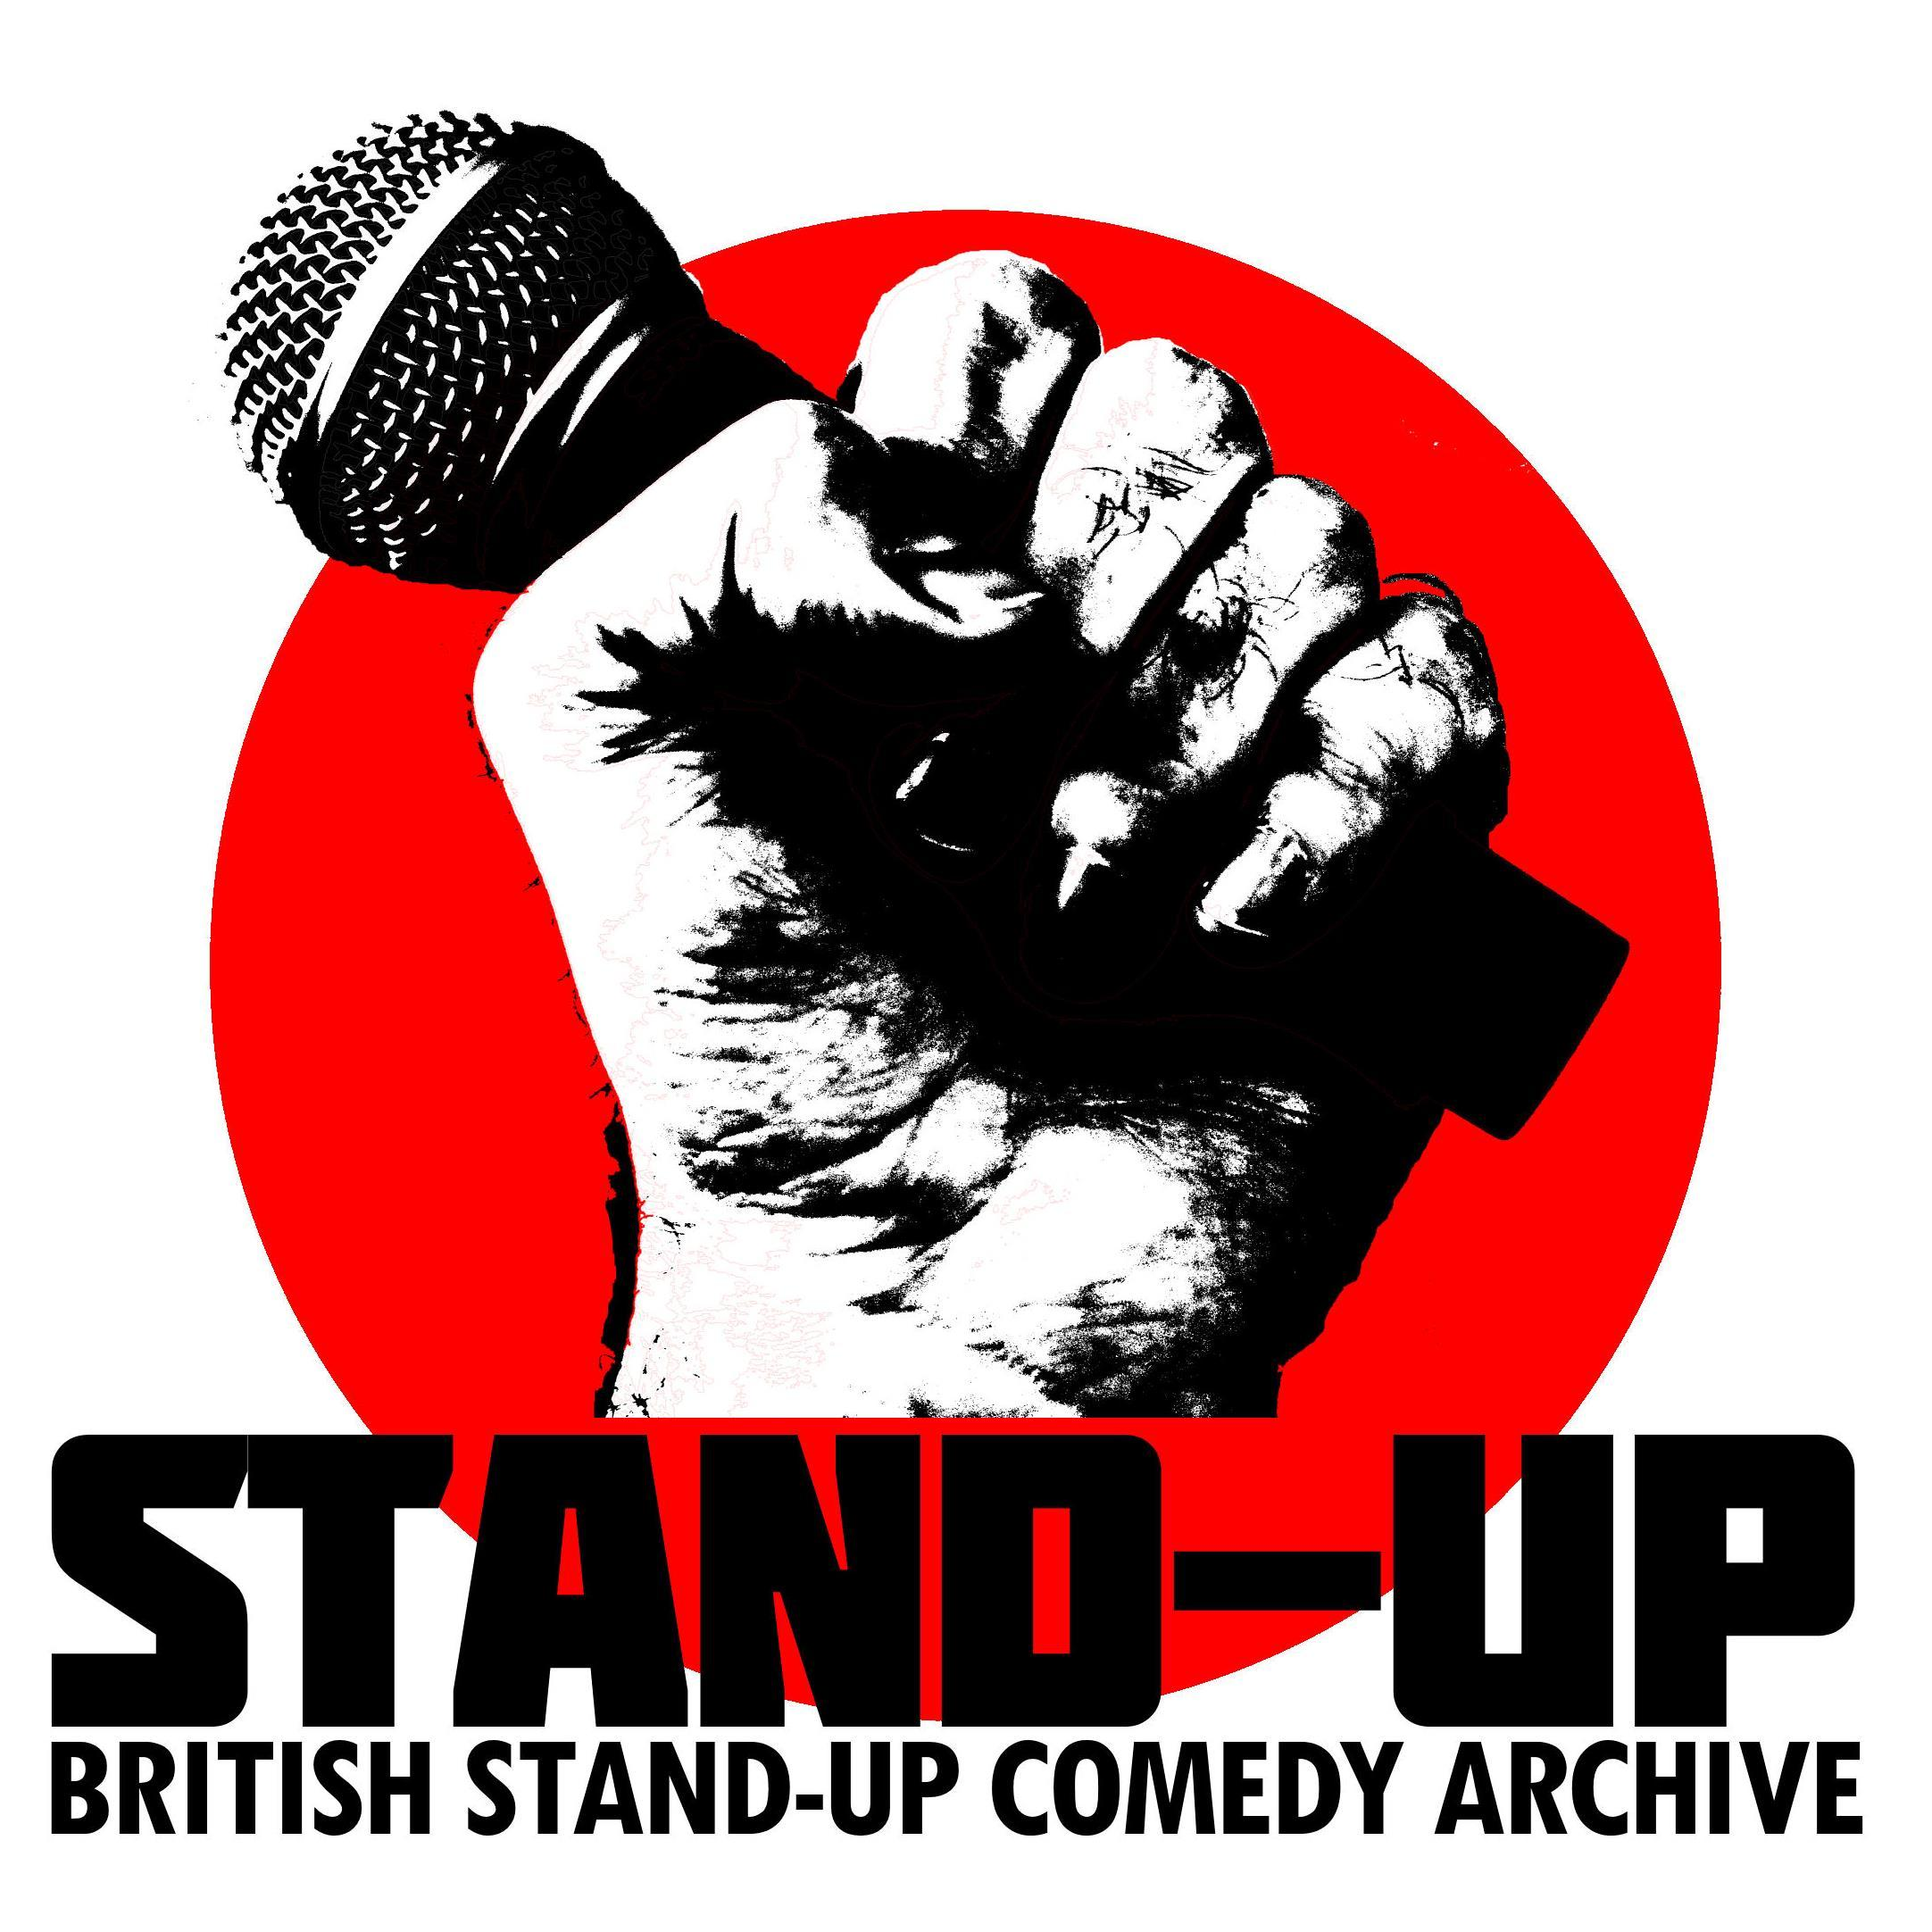 British Stand-Up Comedy Archive logo